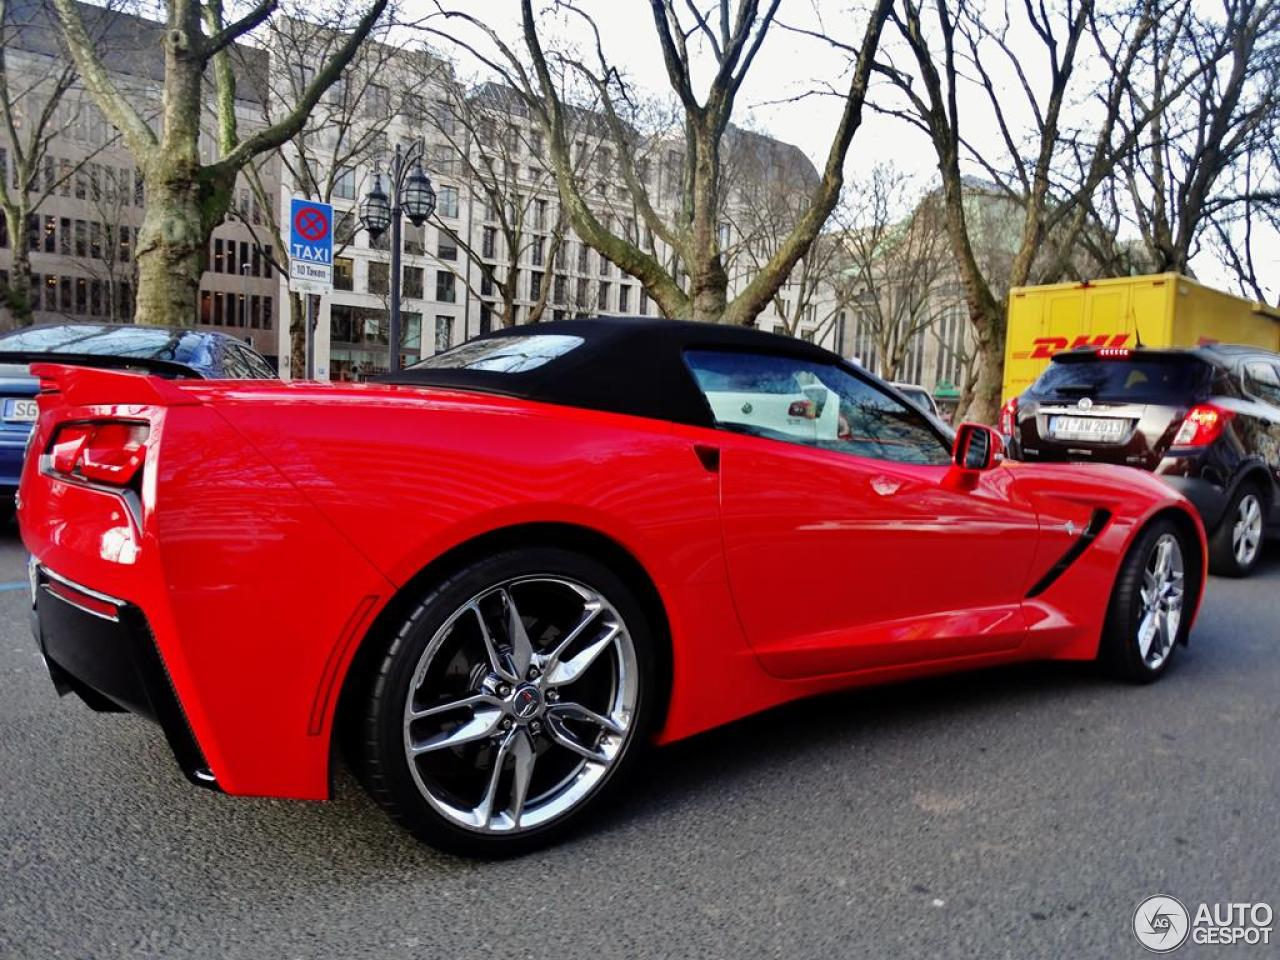 Chevrolet Corvette C7 Stingray Convertible 2